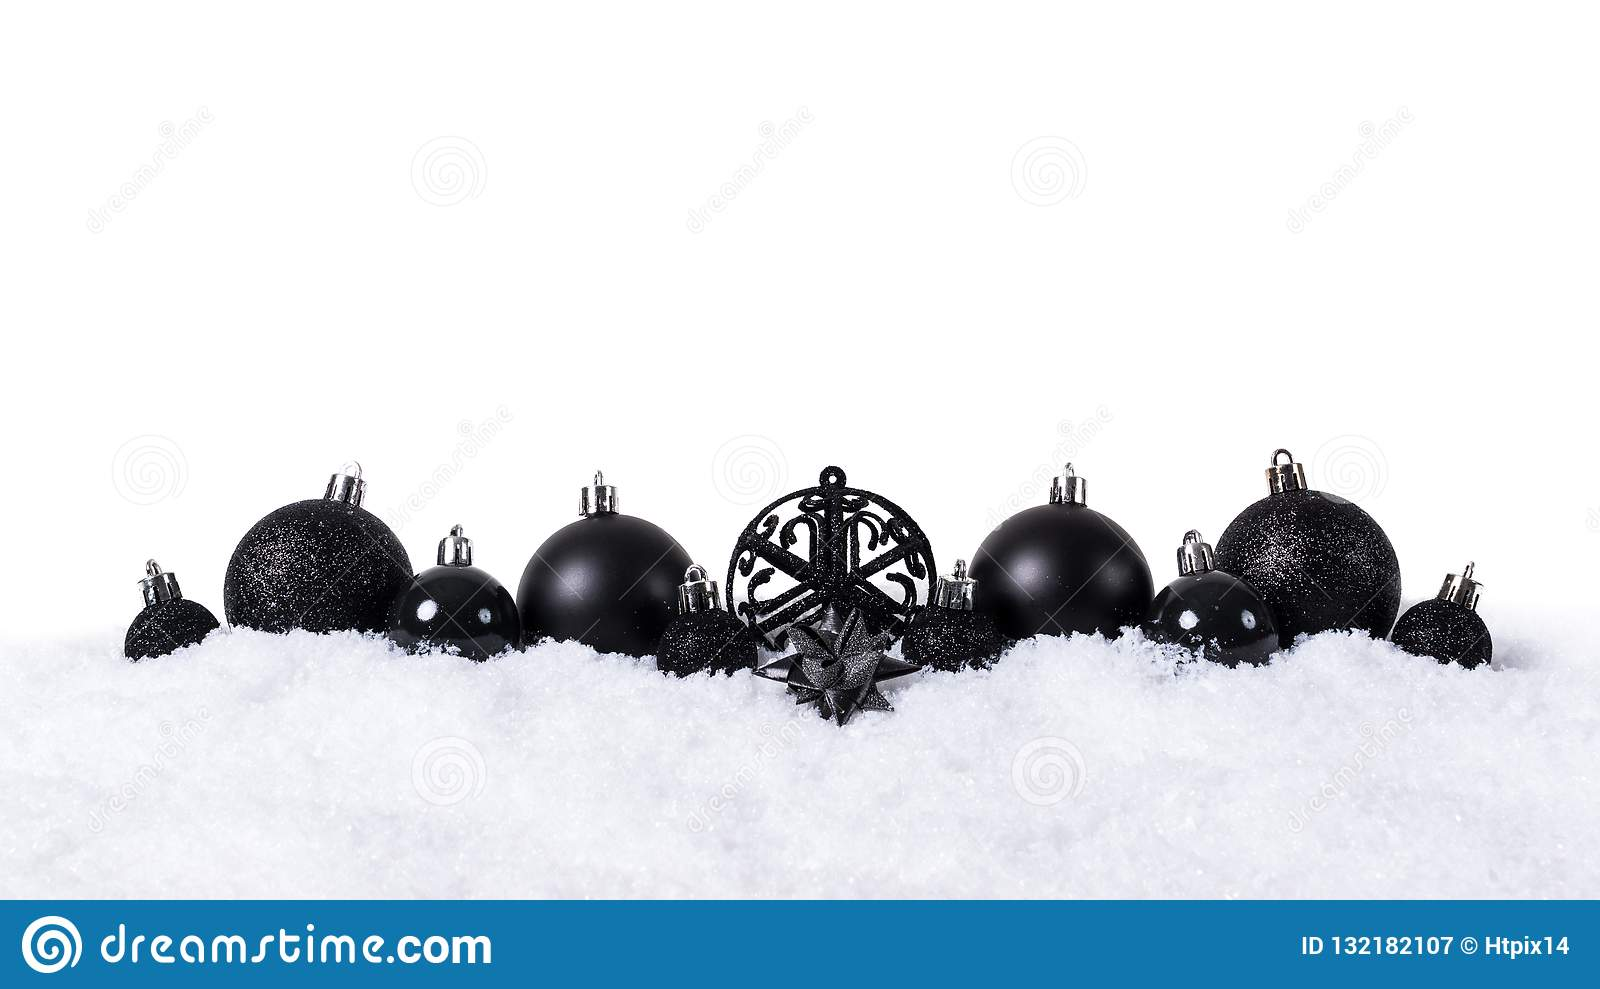 Black Christmas Balls.Black Christmas Balls With Snow Isolated On White Background Stock